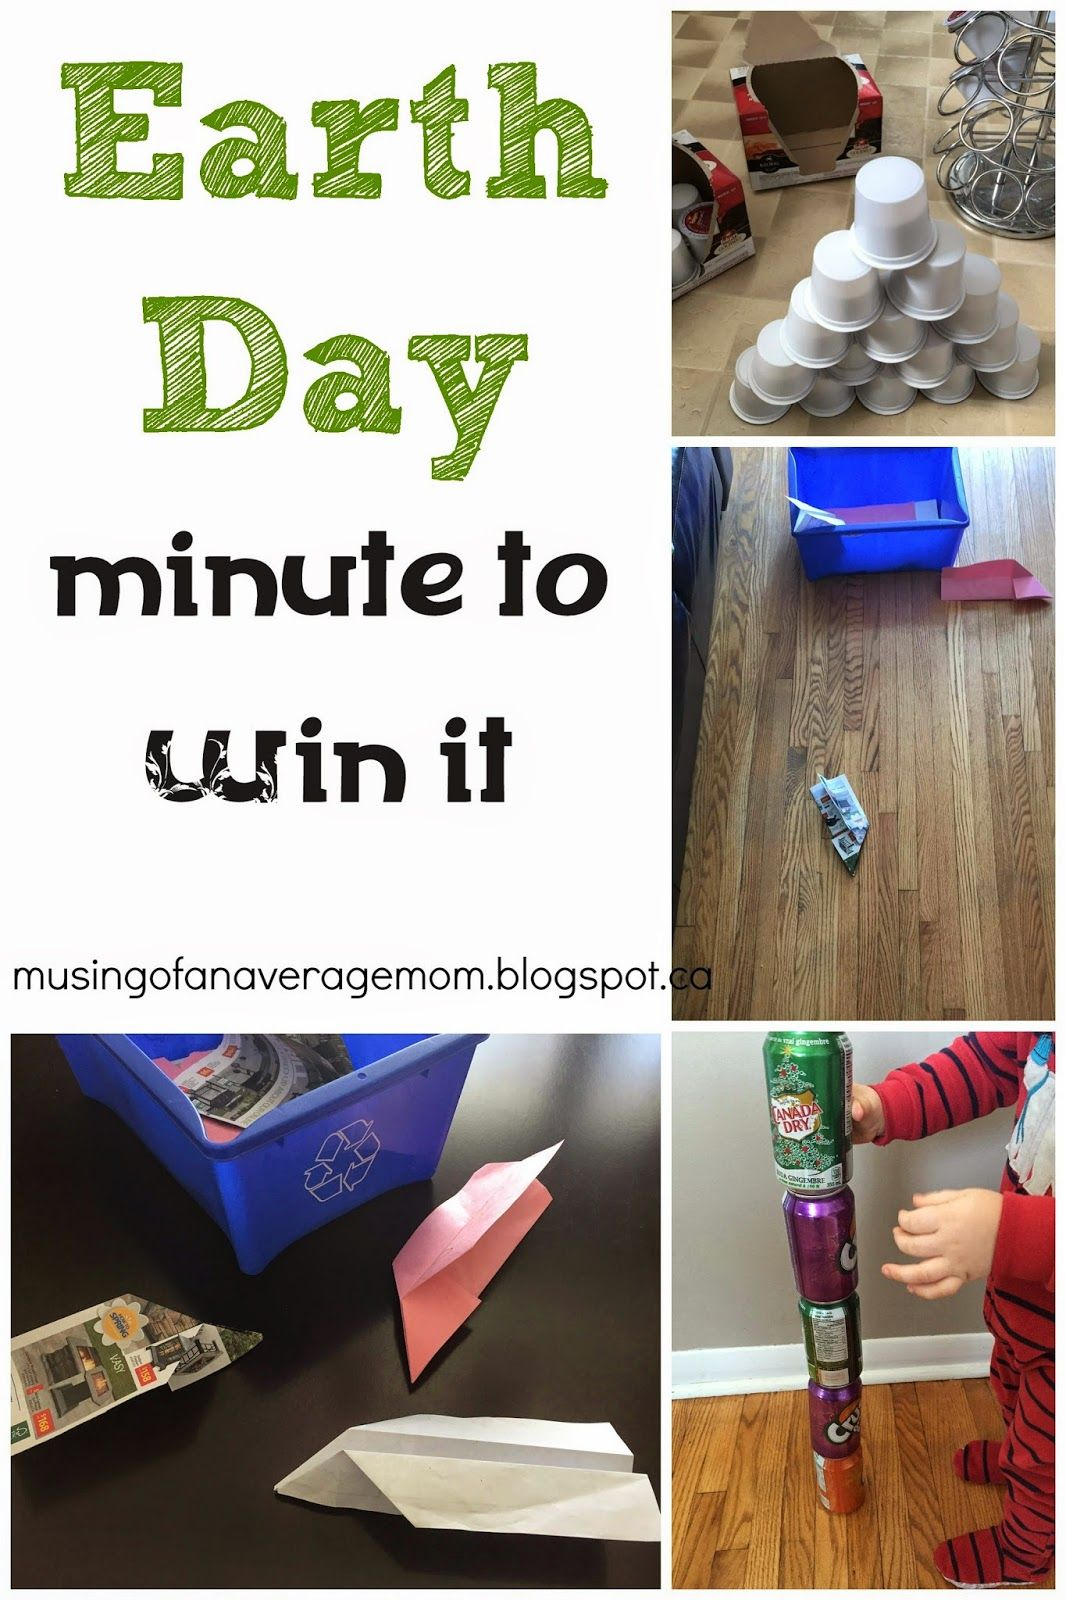 13 Fun Earth Day Games for Kids - The Spruce